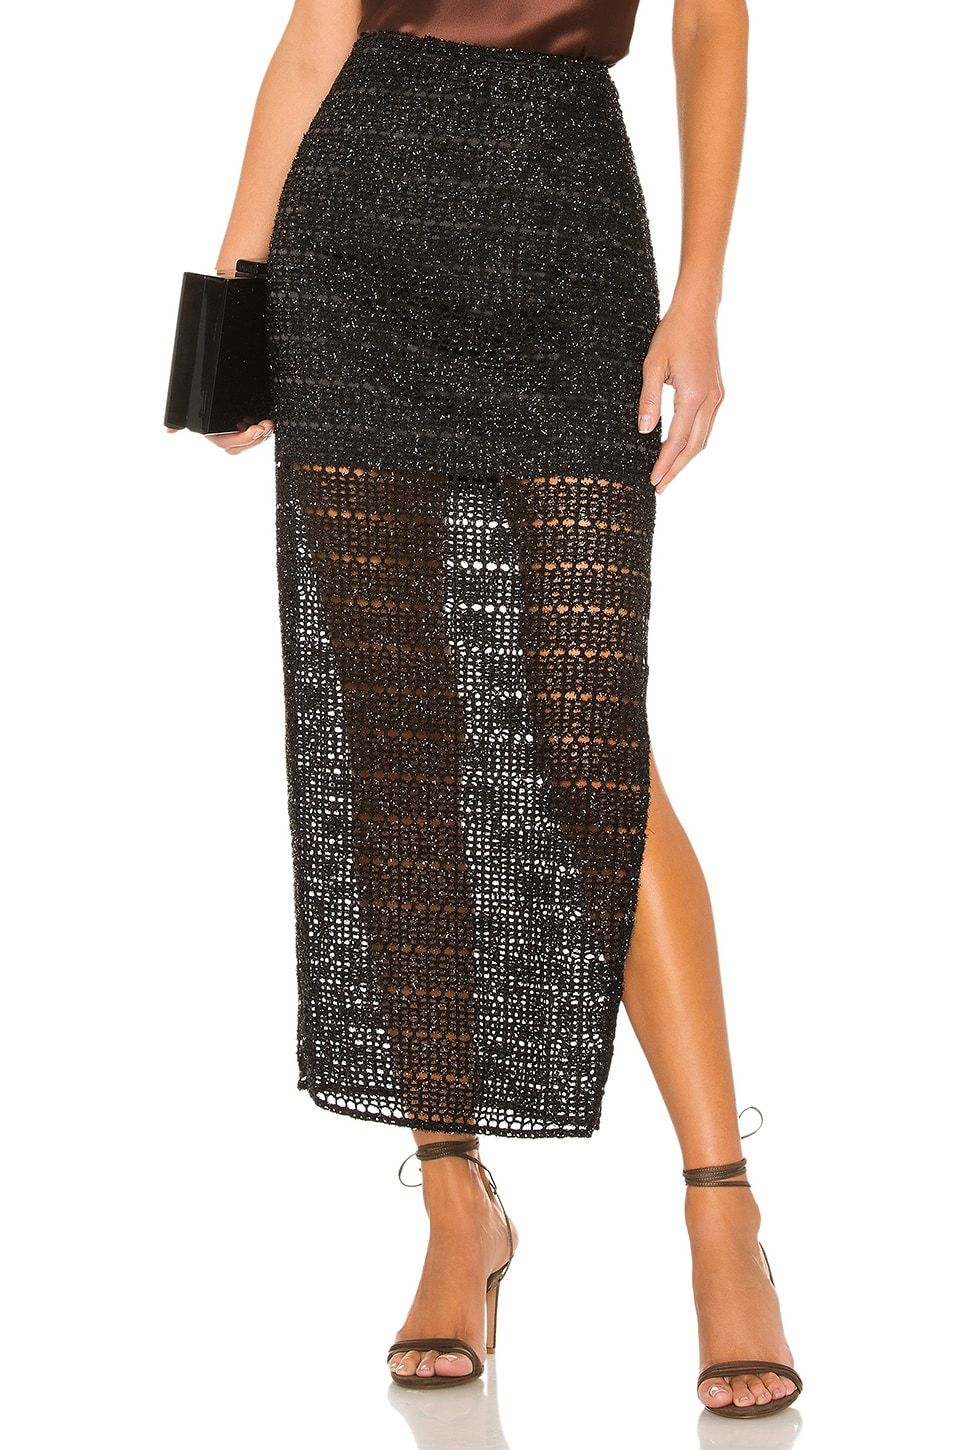 House of Harlow 1960 x REVOLVE Meera Midi Skirt in Noir